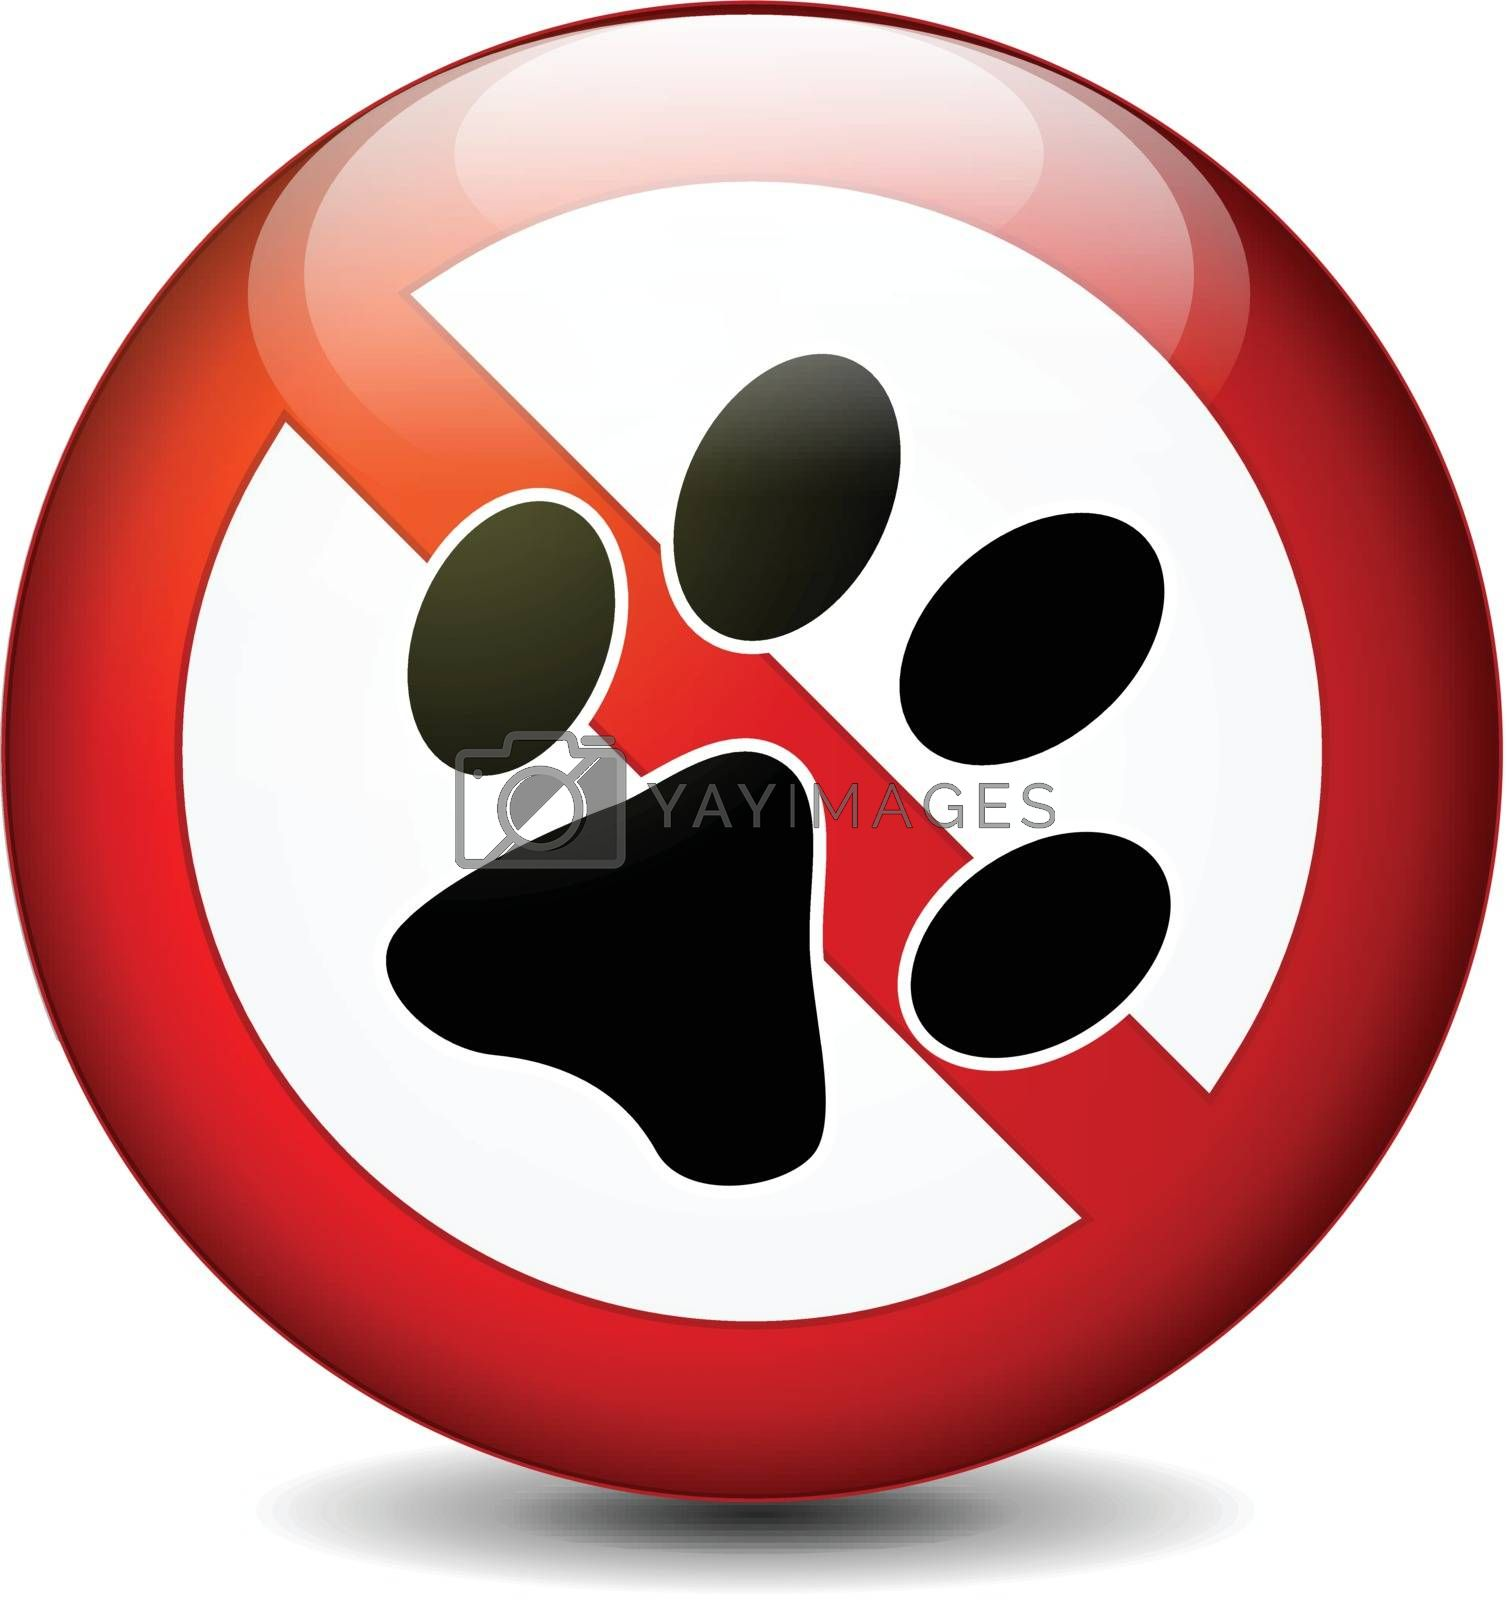 Illustration of no pets round sign on white background